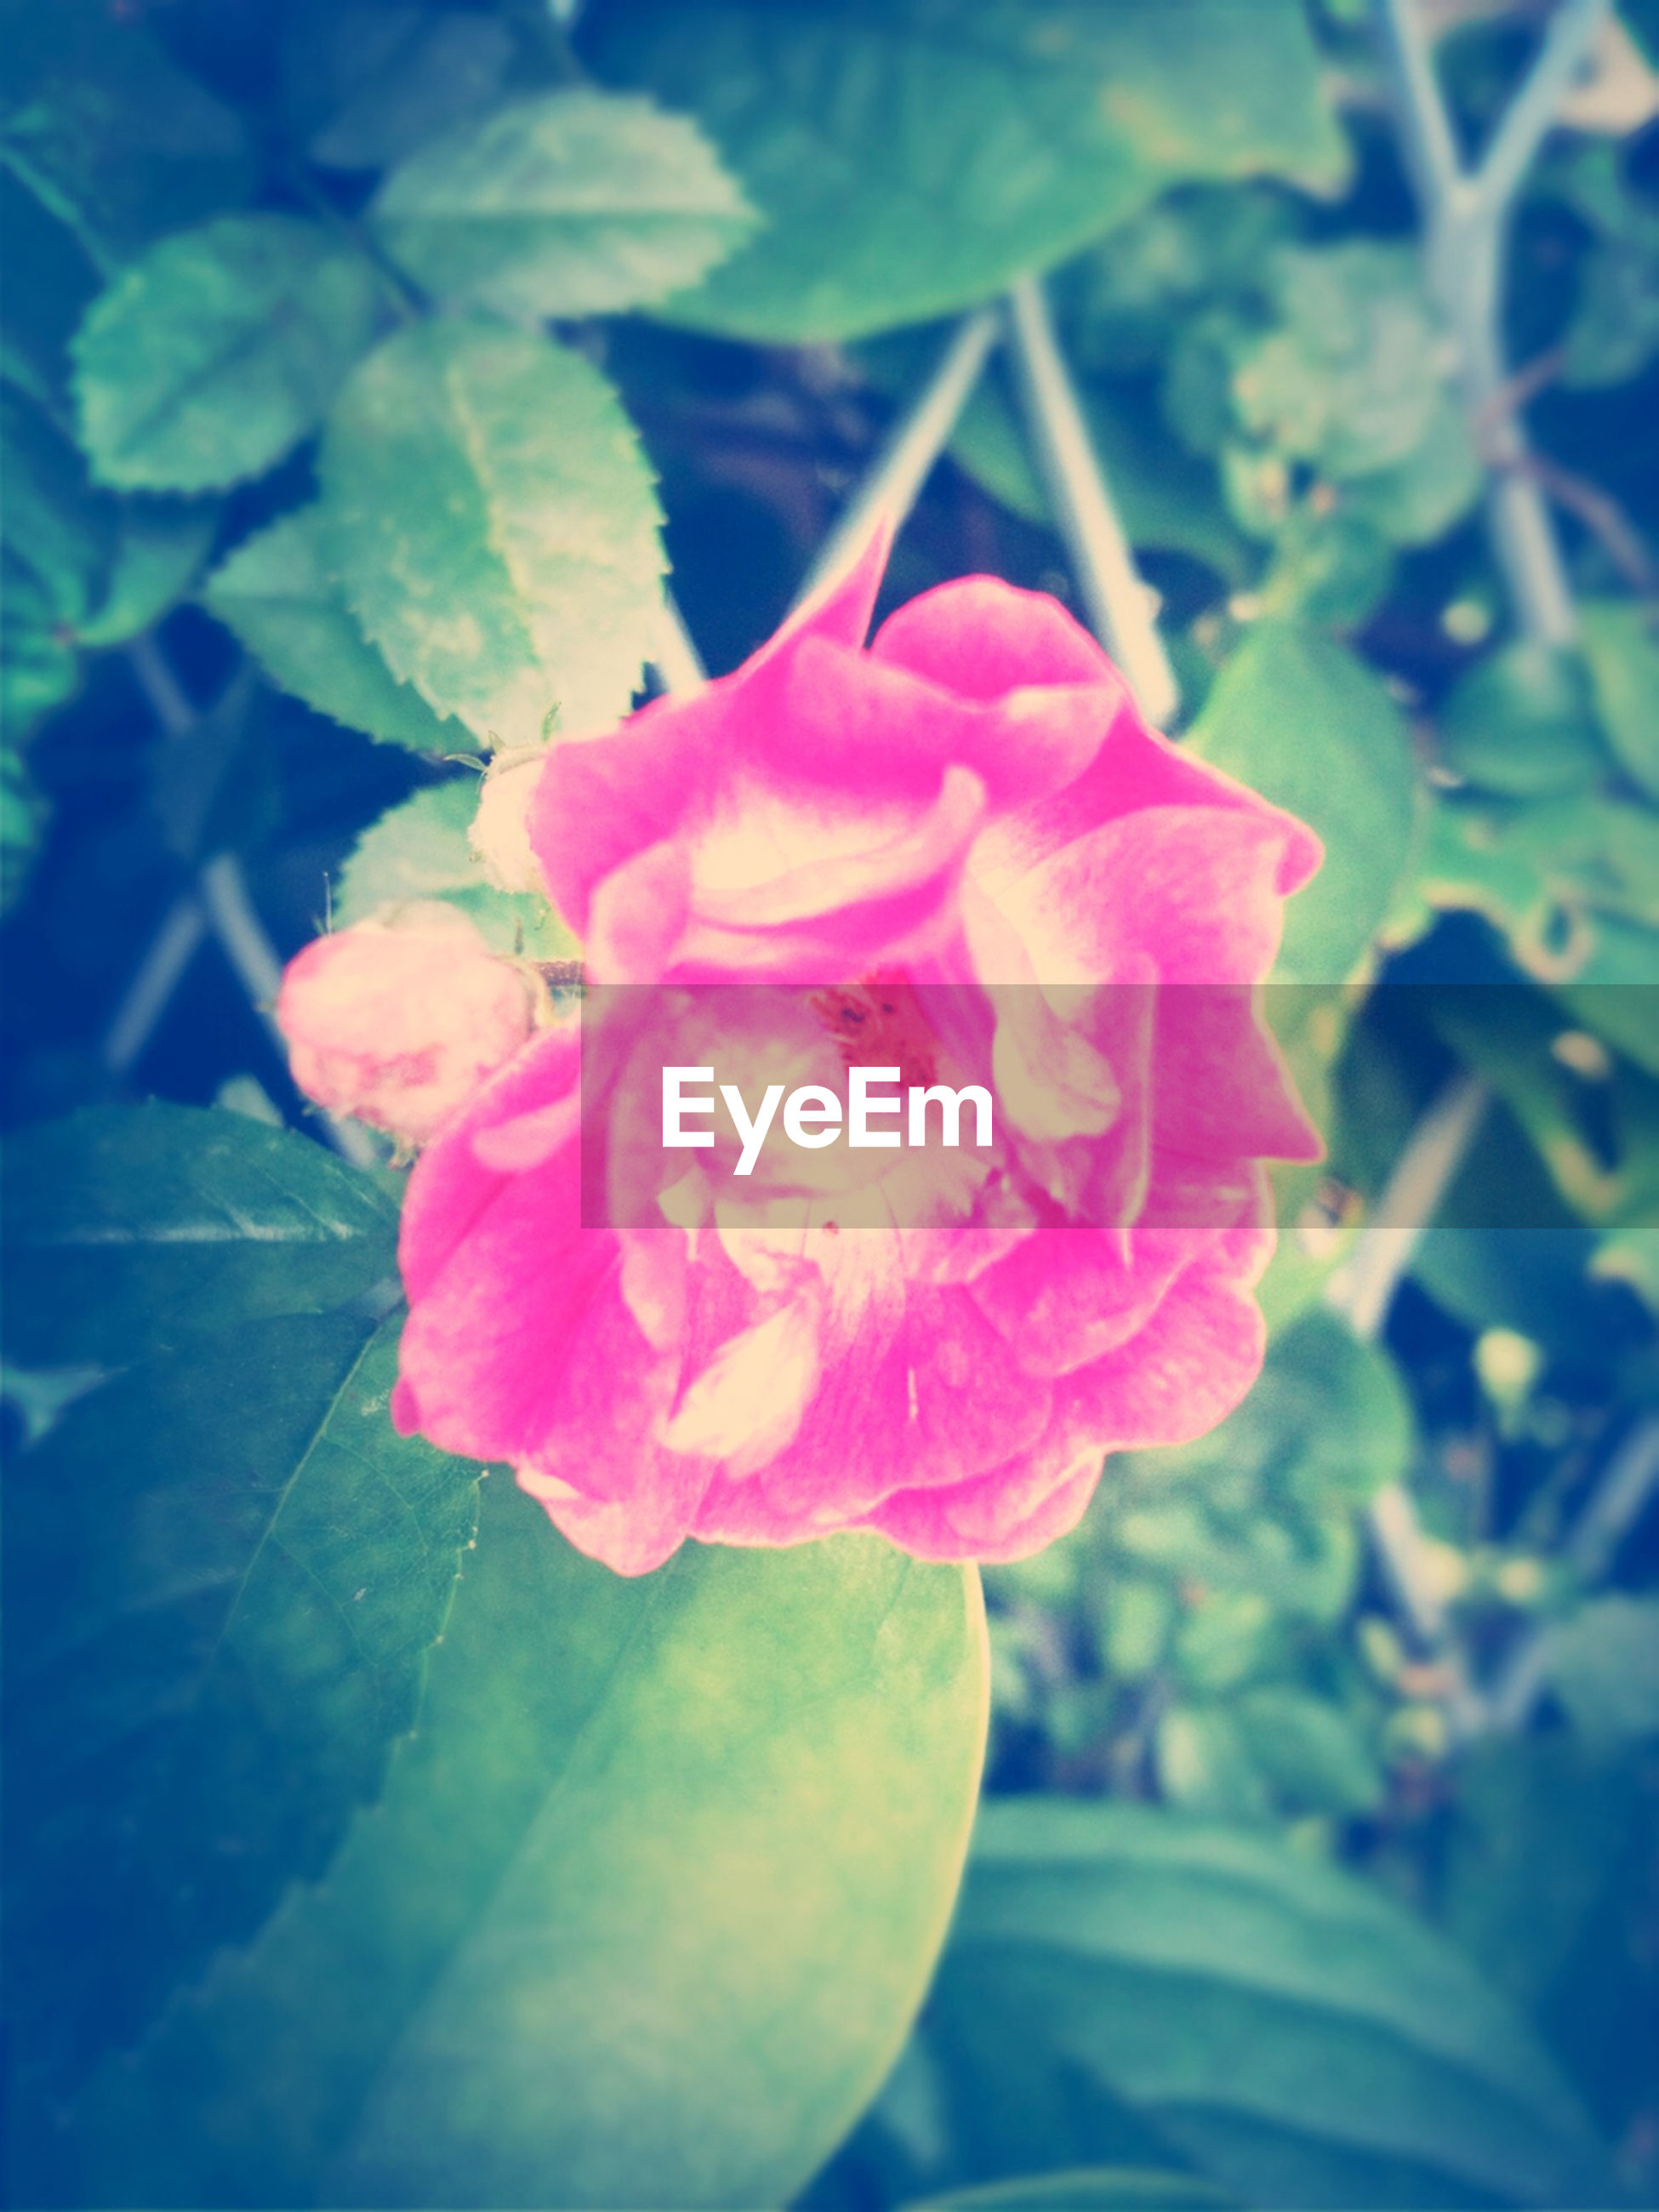 flower, petal, flower head, fragility, freshness, pink color, beauty in nature, rose - flower, growth, close-up, single flower, blooming, nature, plant, leaf, focus on foreground, in bloom, rose, pink, blossom